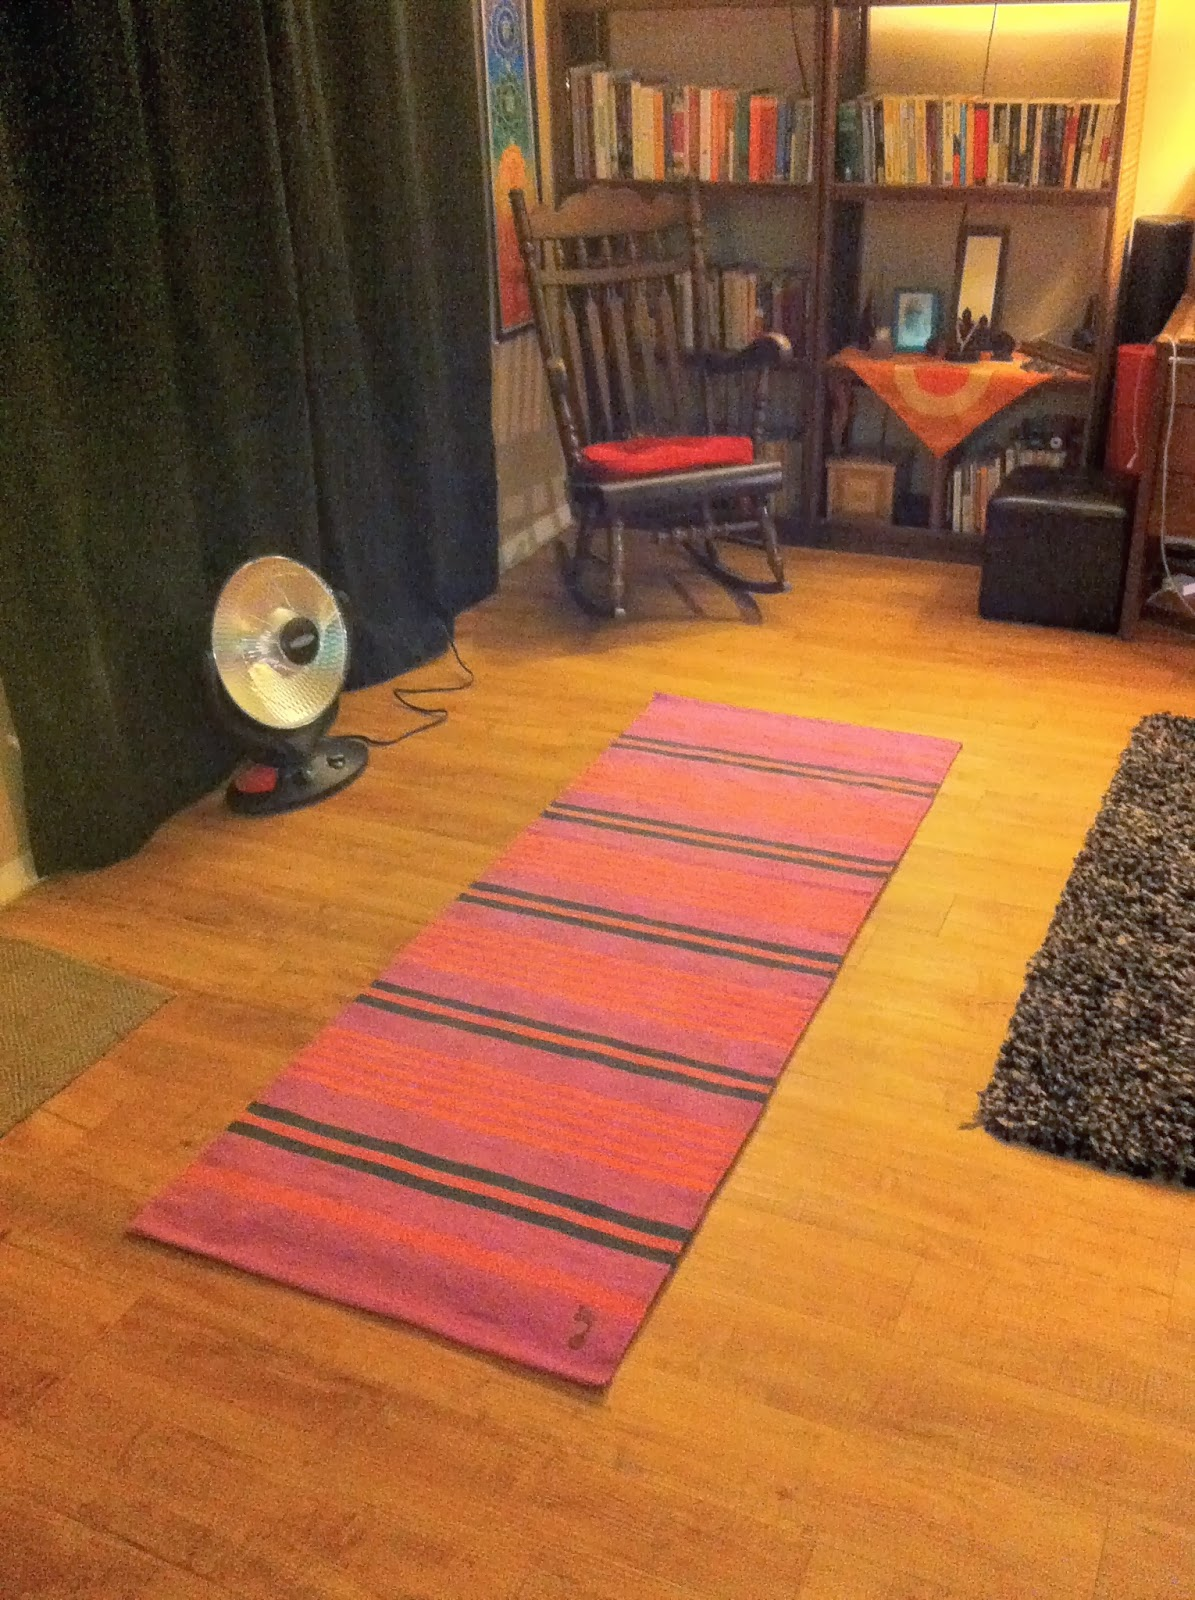 A Mysore Practice Rug In Its Natural Environment